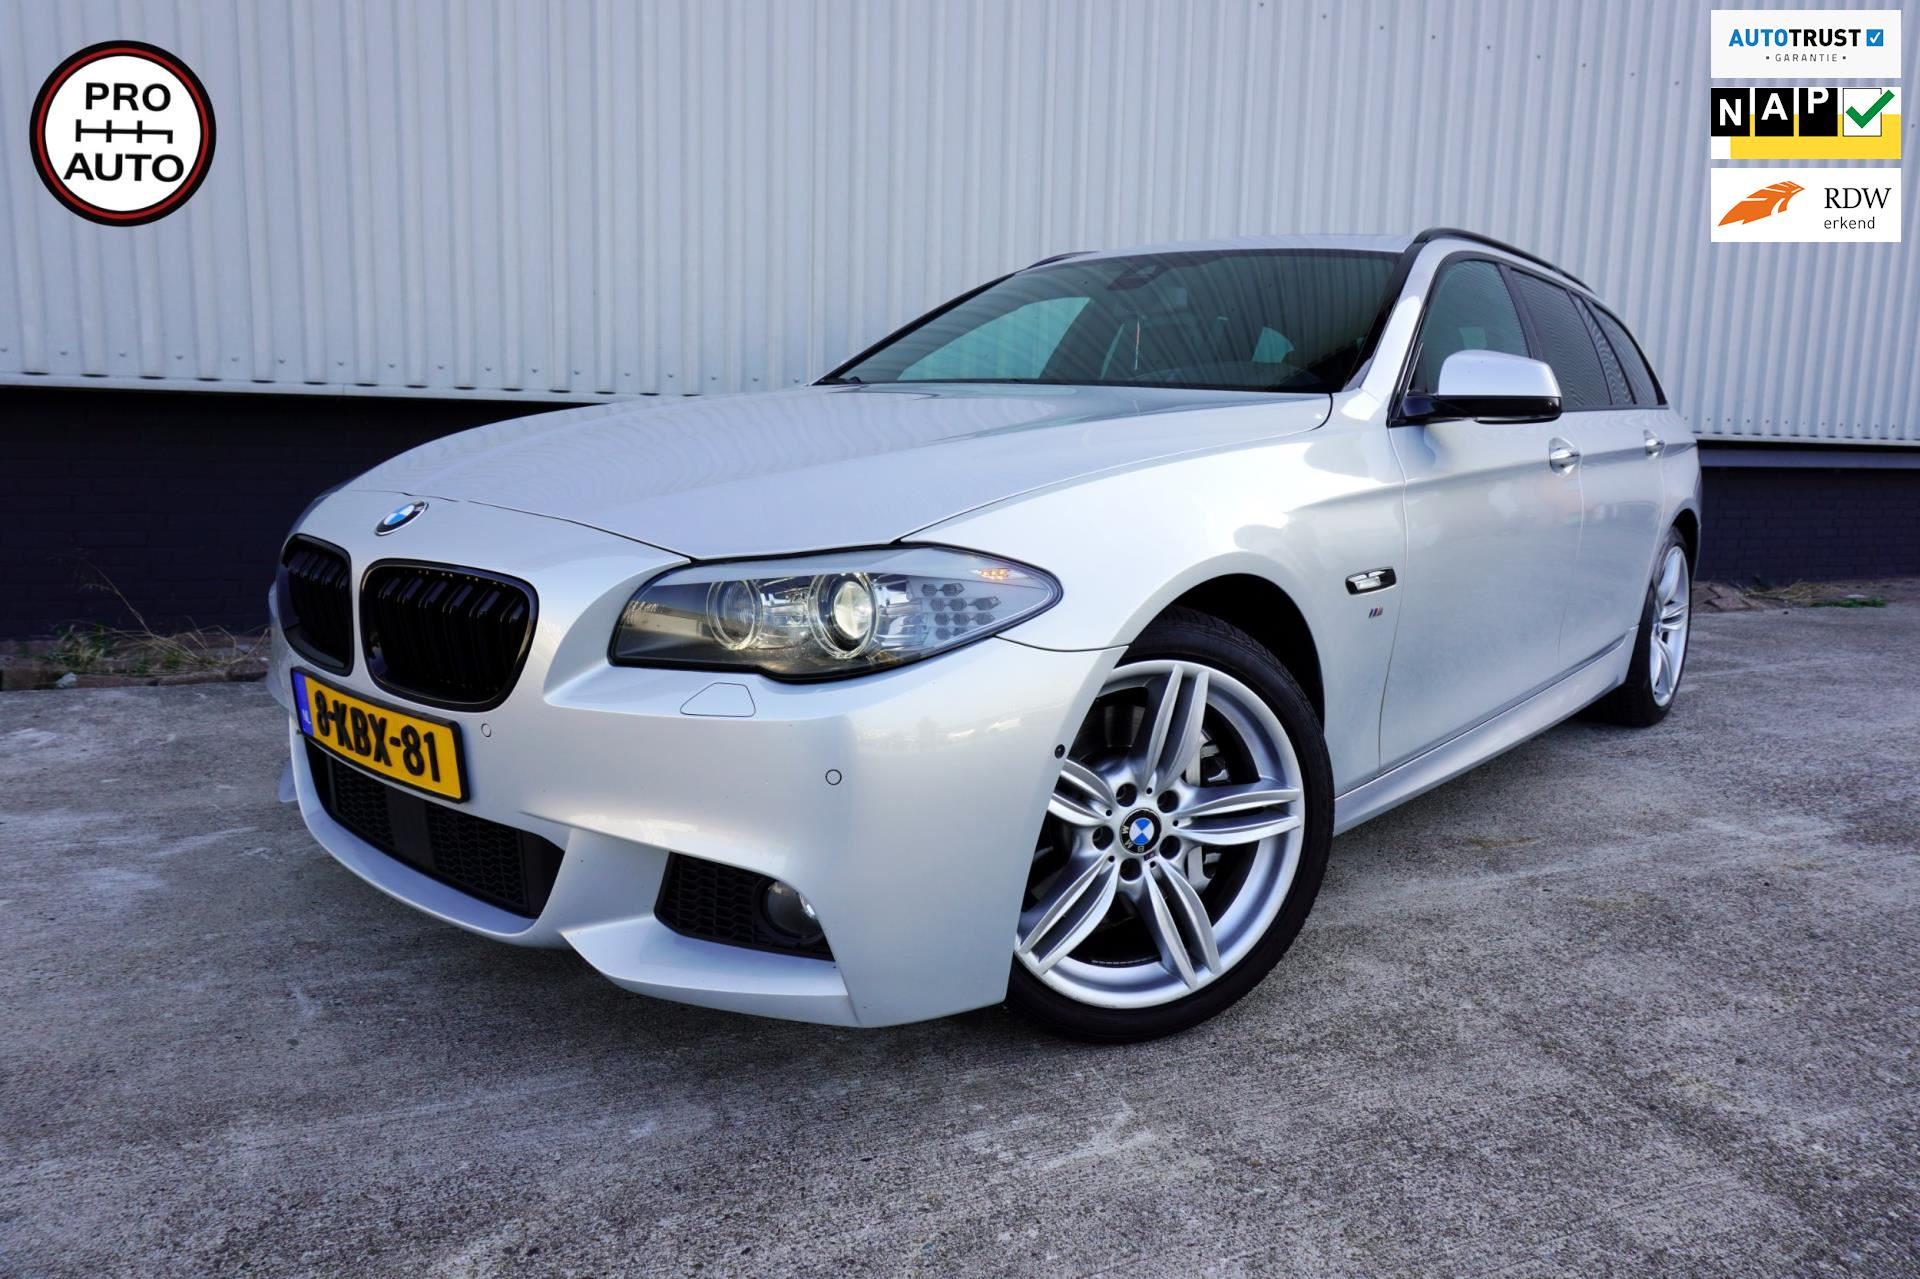 BMW 5-serie Touring occasion - Proautoverkoop